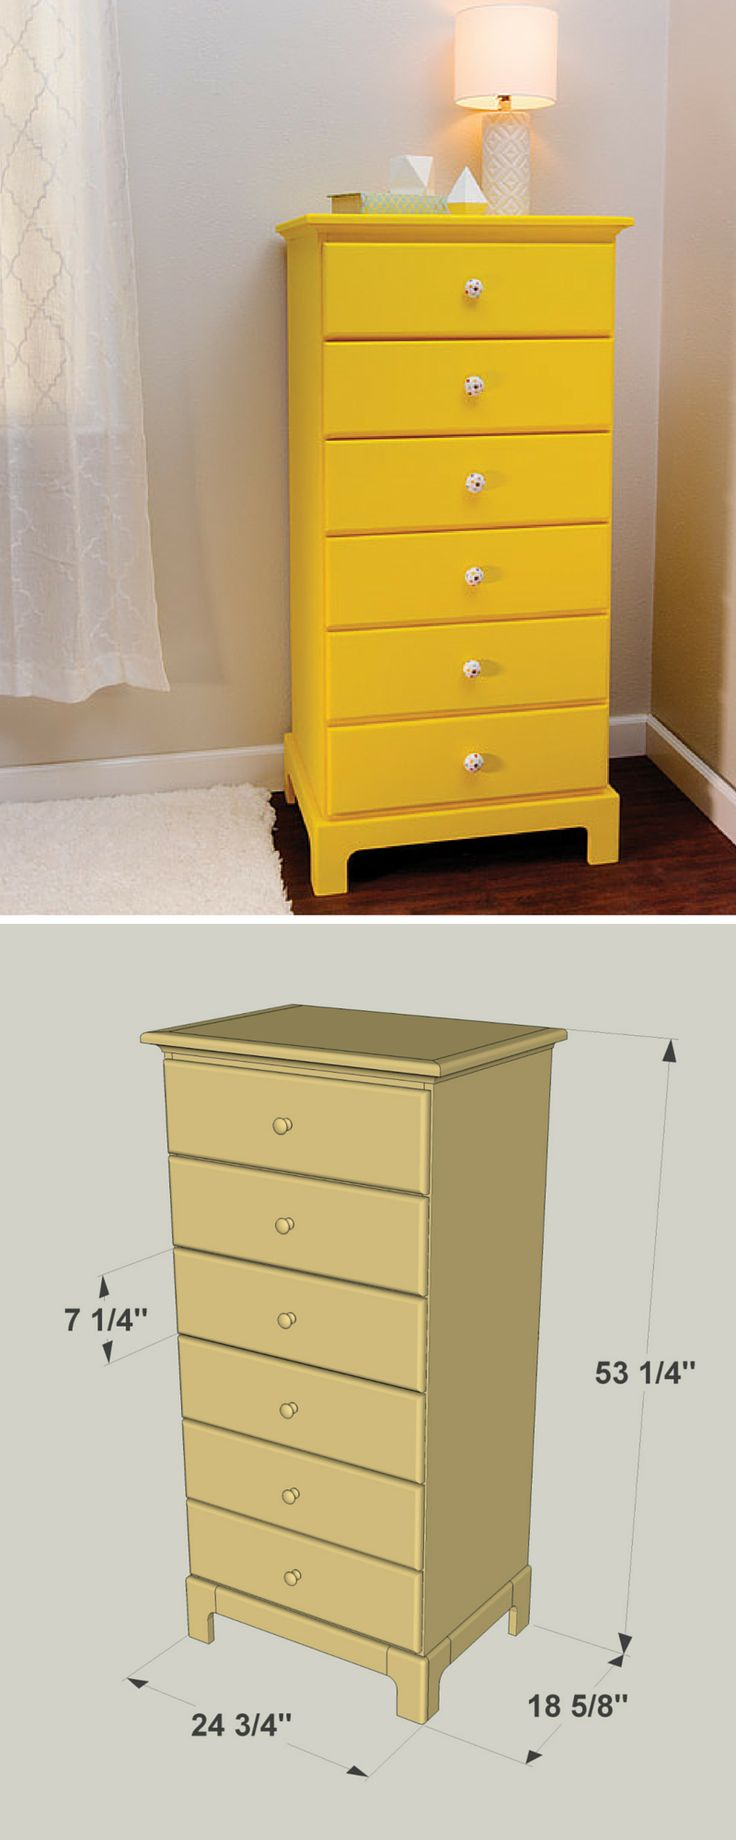 Here's a great way to pack a lot of clothes storage into a small space. This traditional tall chest has six generously sized drawers, but the whole piece fits into a space roughly two feet wide and less than two feet deep. The drawers ride on ball bearing slides for easy operation, too. Get the free DIY plans at buildsomething.com